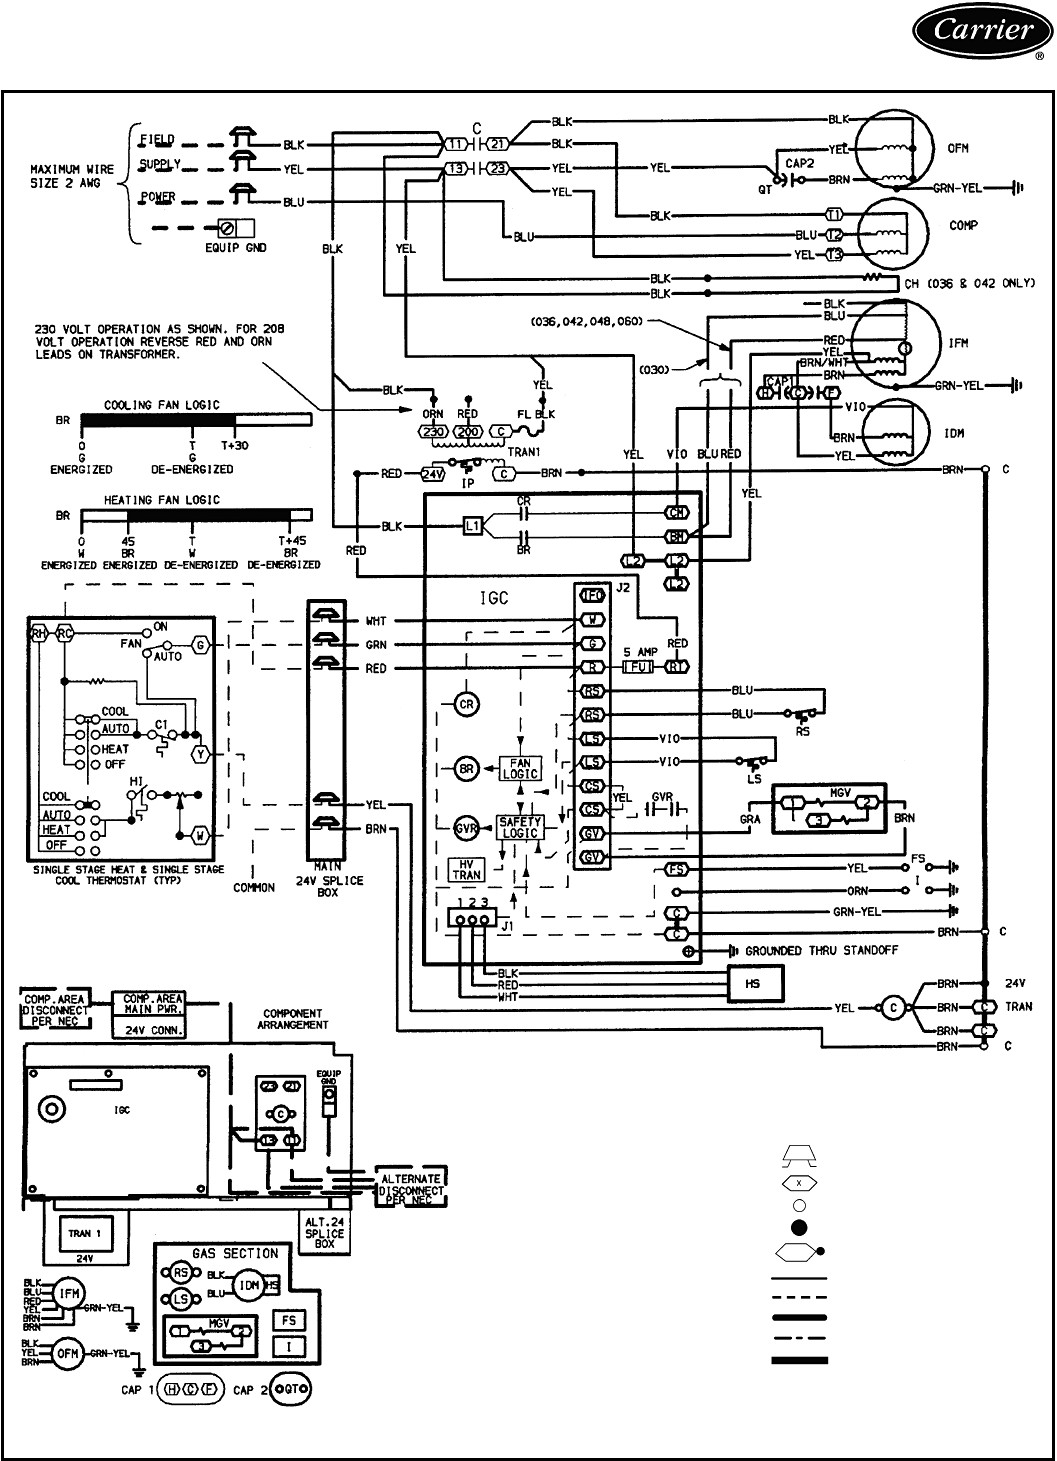 Carrier Condensing Unit Wiring Diagram Diagrams Schematics